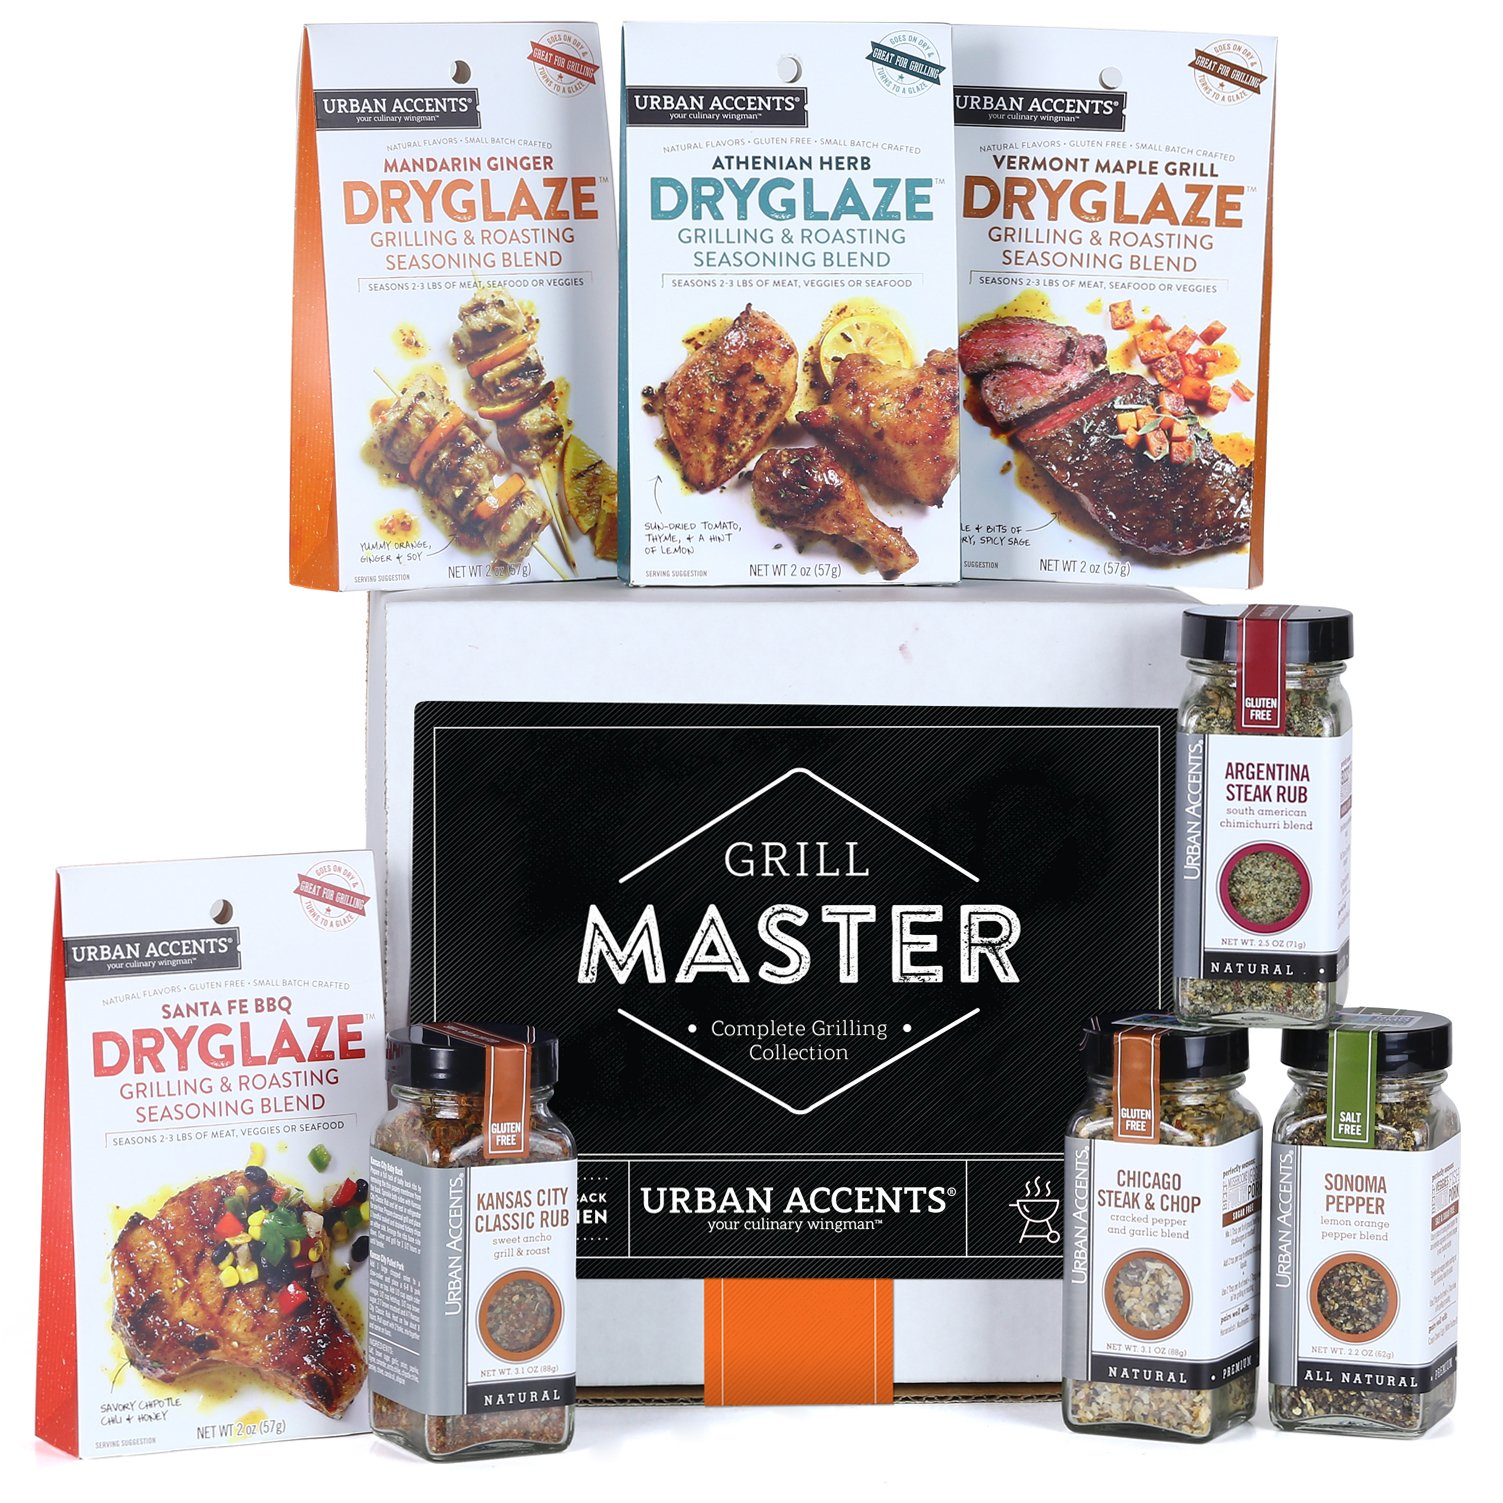 Urban Accents GRILL MASTER, The Complete Gourmet Grilling Collection (Set of 8) - A Dryglaze, Grilling Spices and Rubs Gift Set- Perfect Gift for Him, Weddings or Any Occasion by Urban Accents (Image #1)